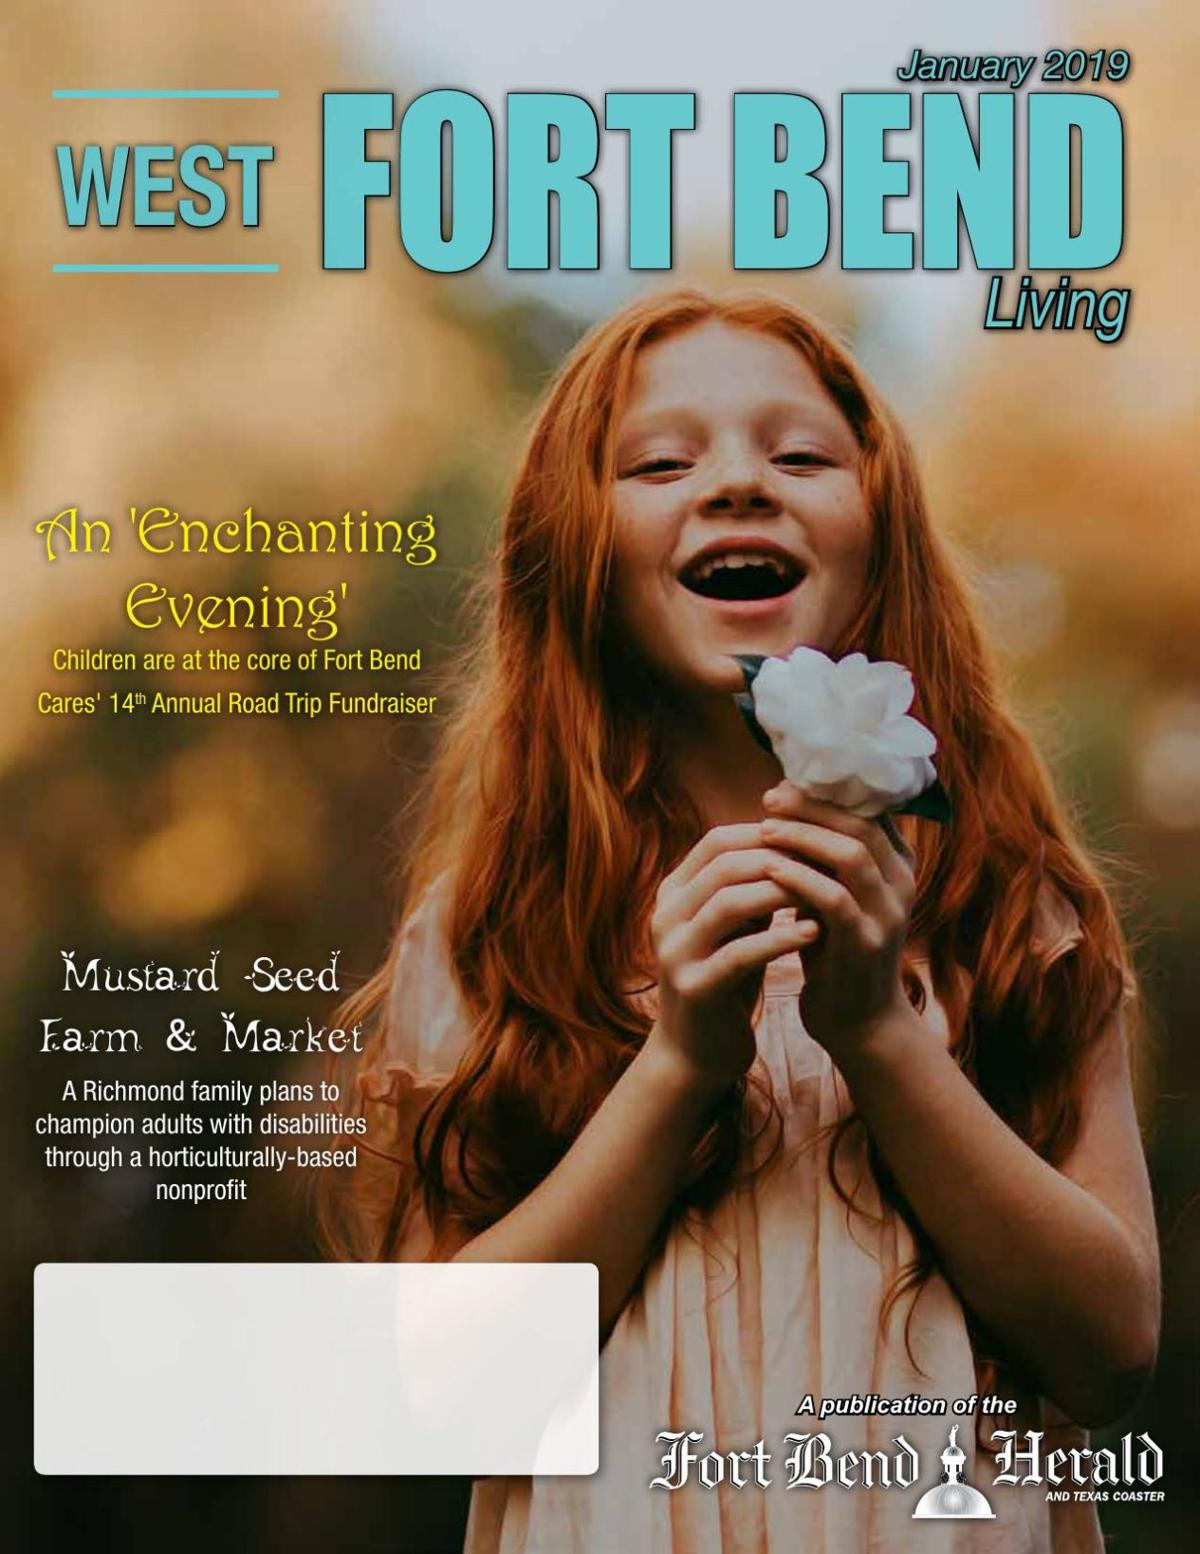 West Fort Bend Living: January 2019